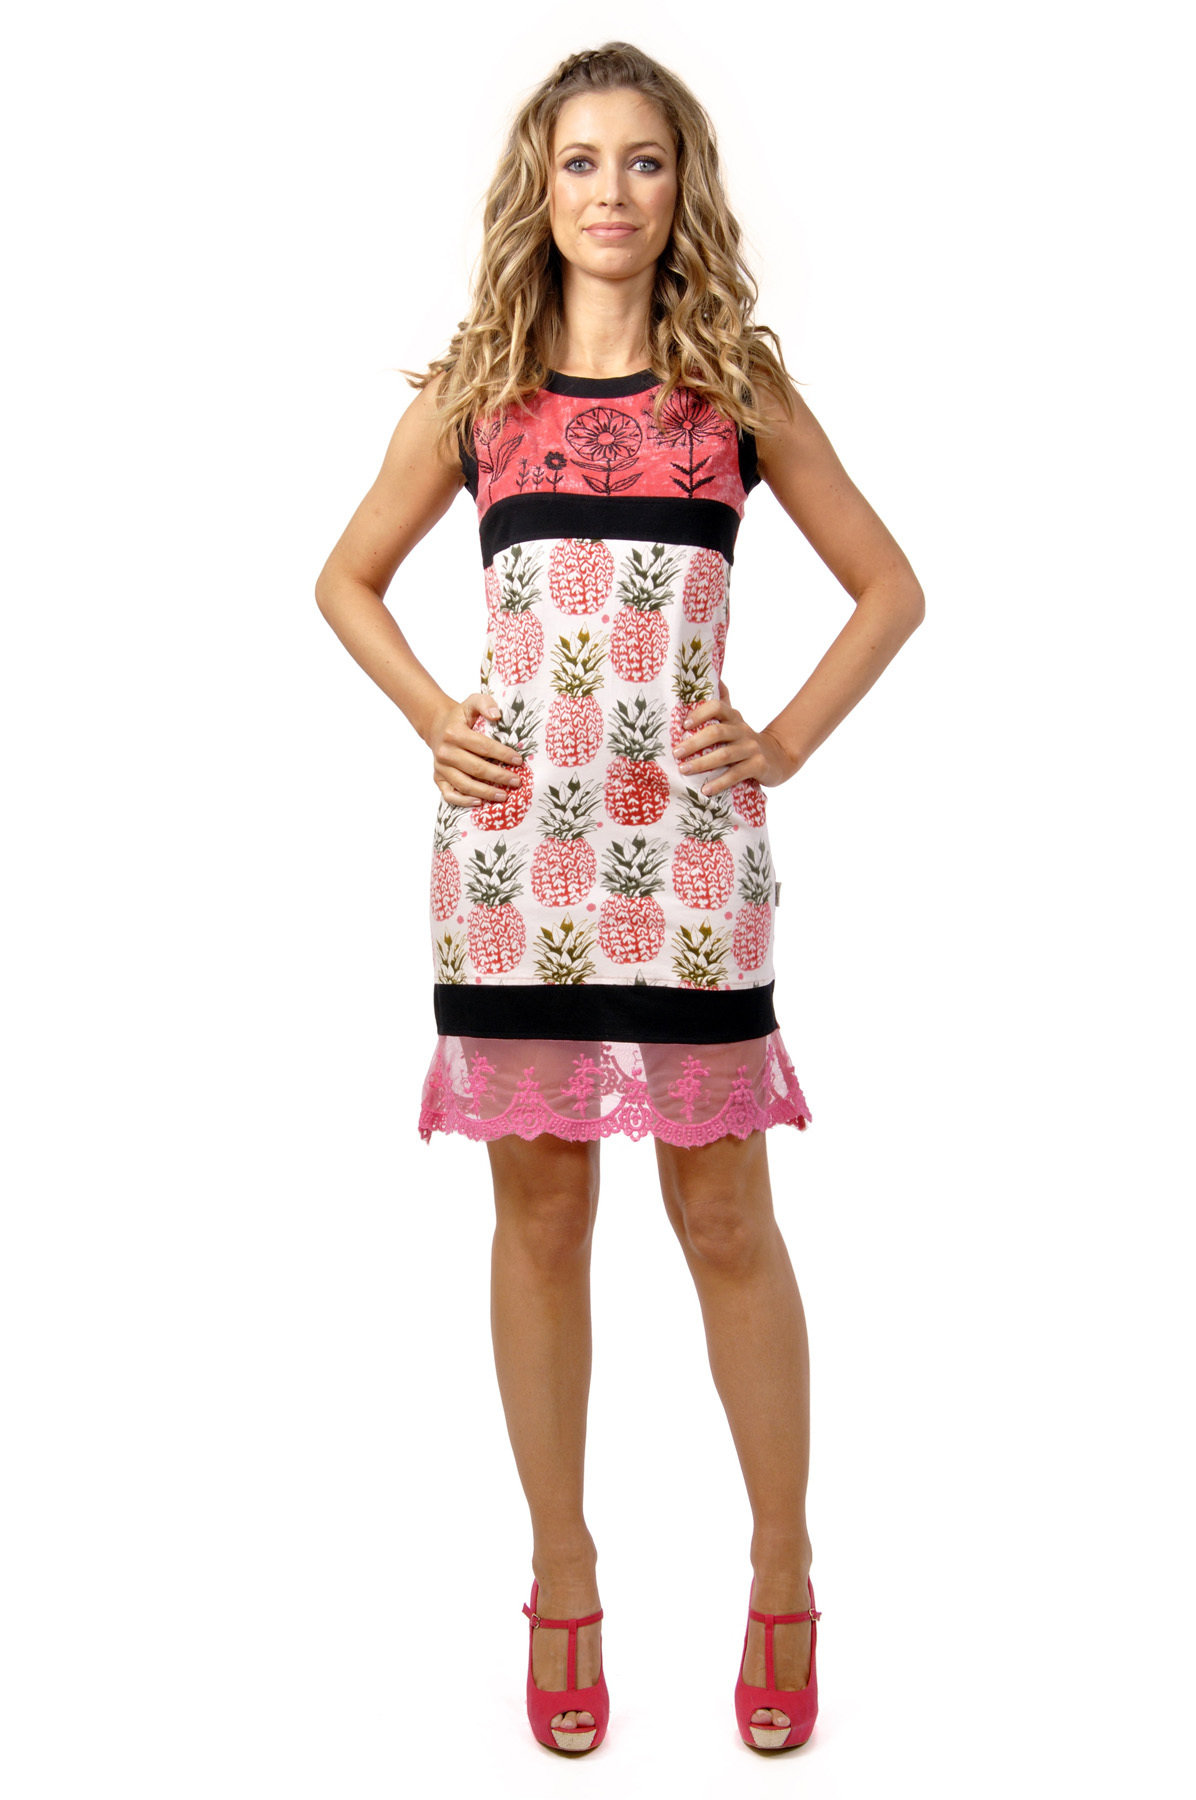 Savage Culture: Pink Pina Colada Laurie Dress (1 Left!) SAVAGE_30022_PINK